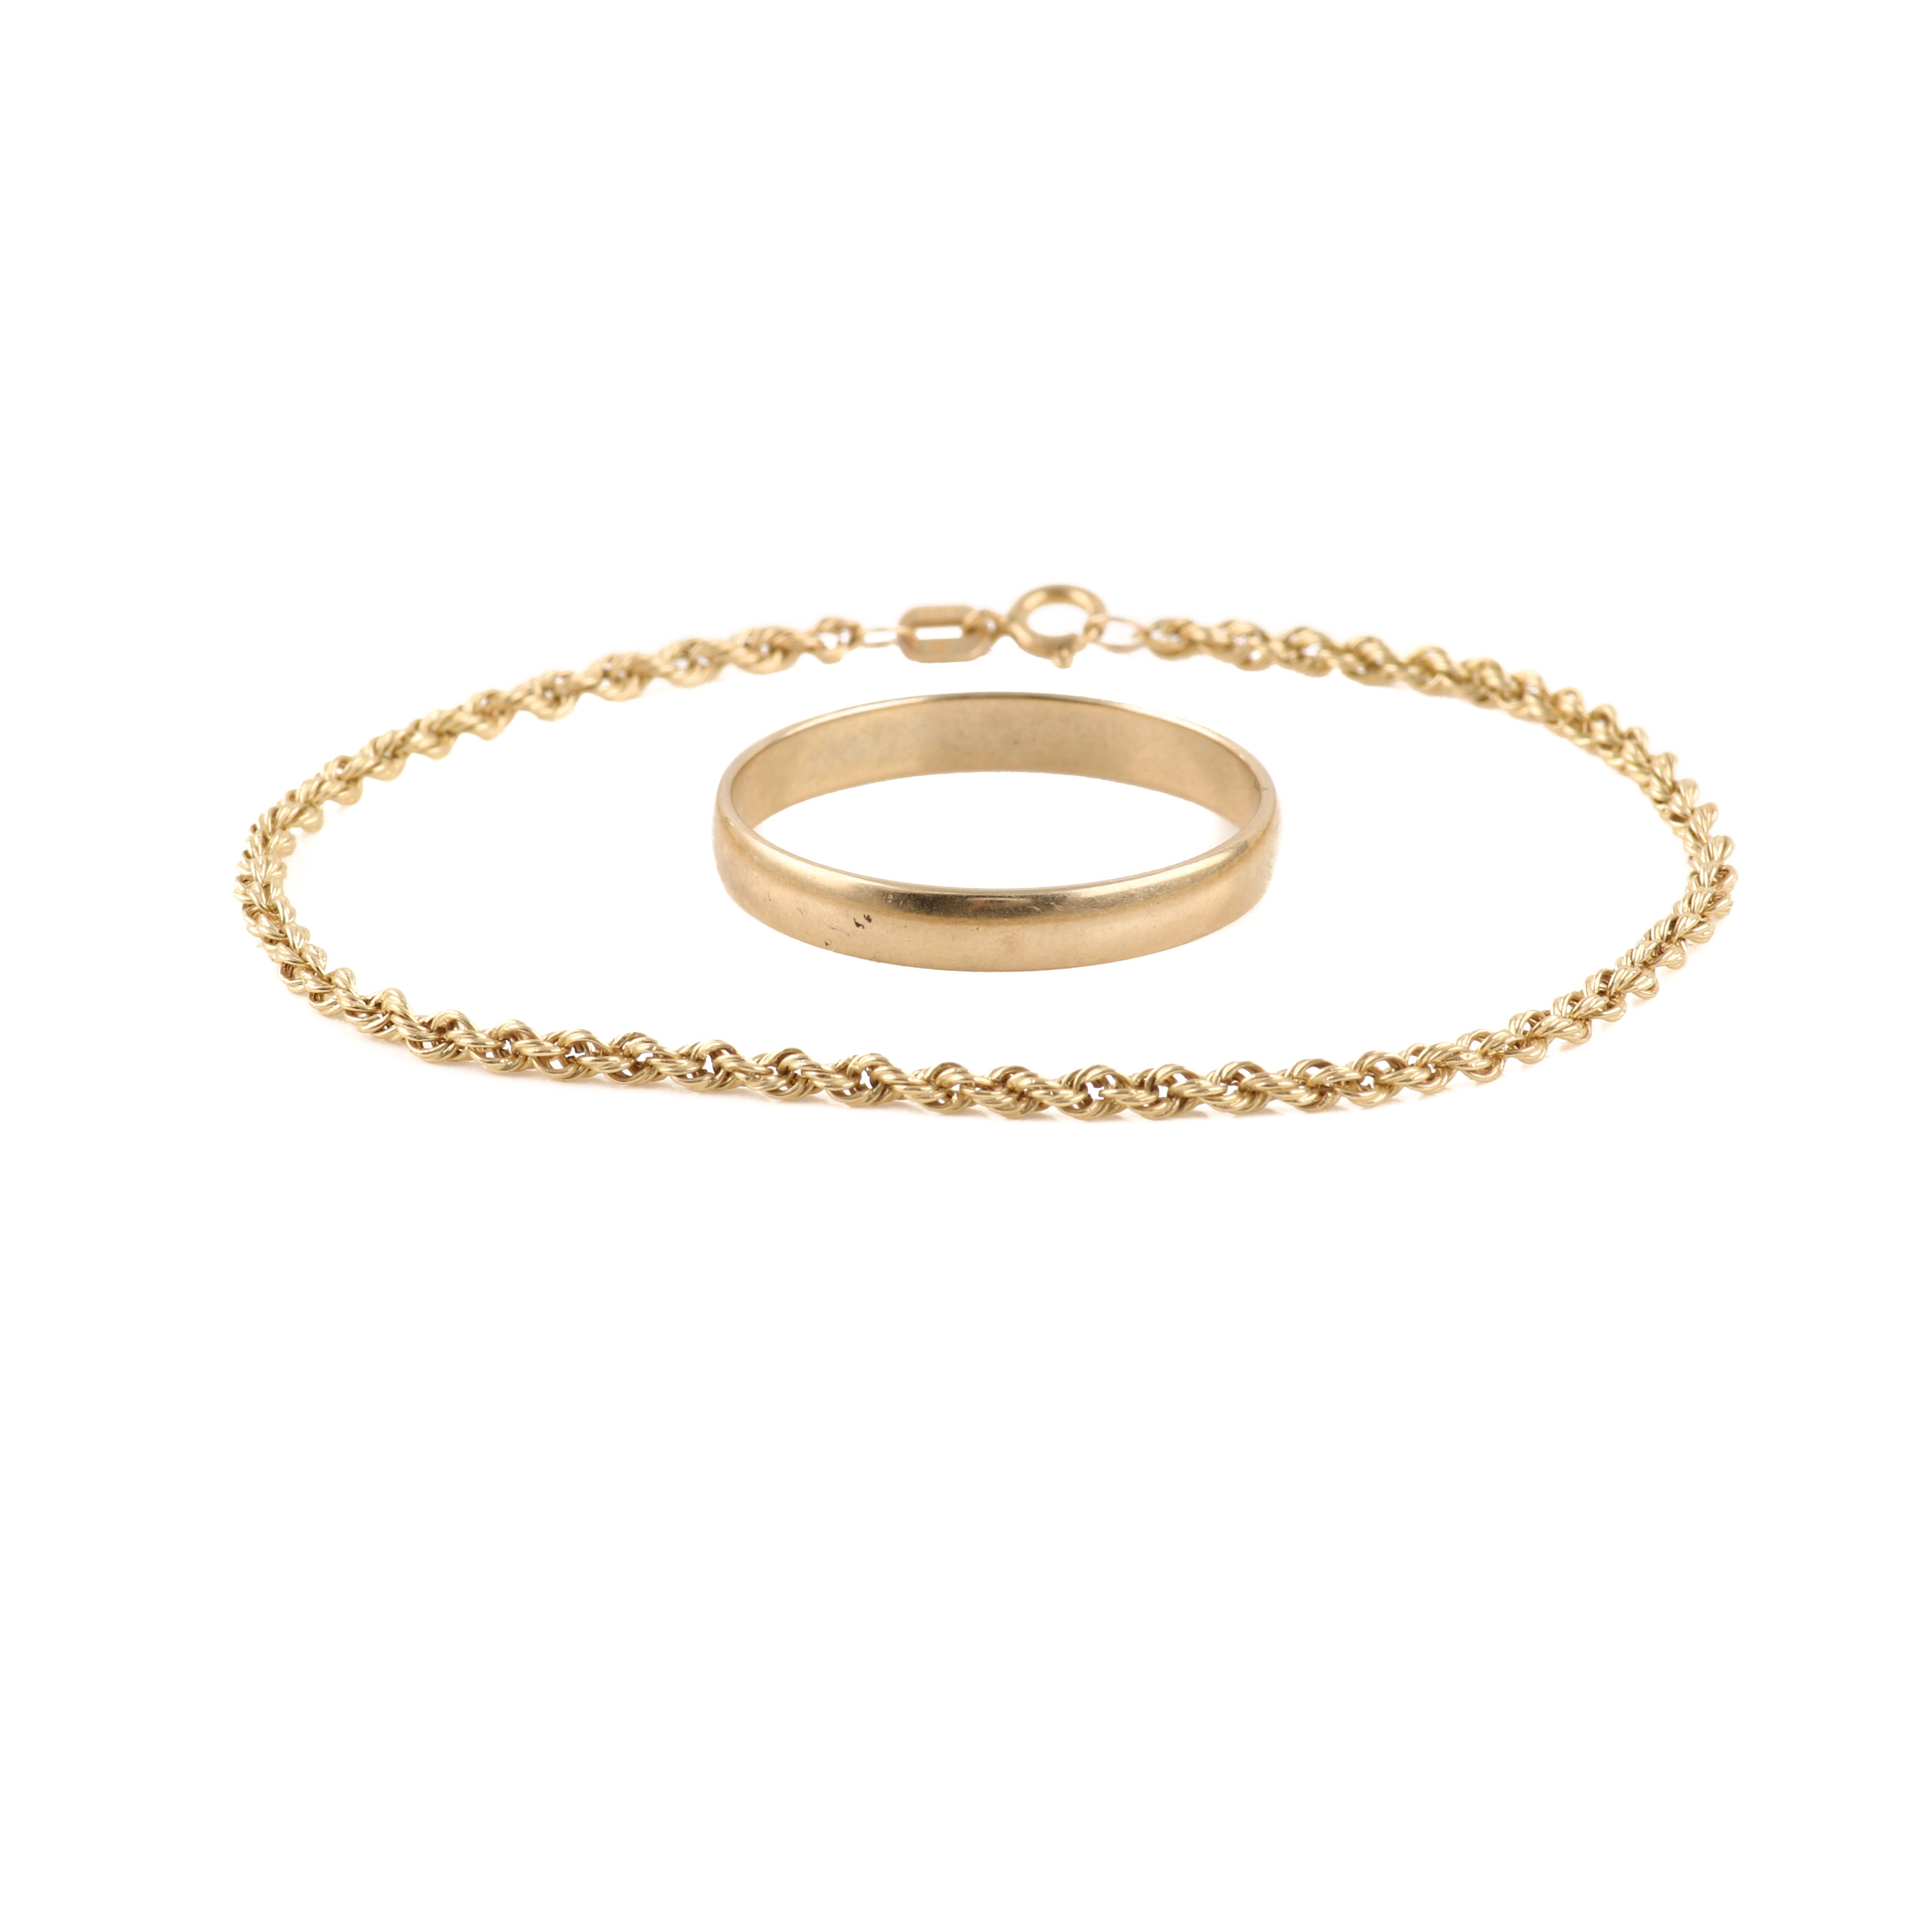 14K Yellow Gold Bracelet and 10K Yellow Gold Ring